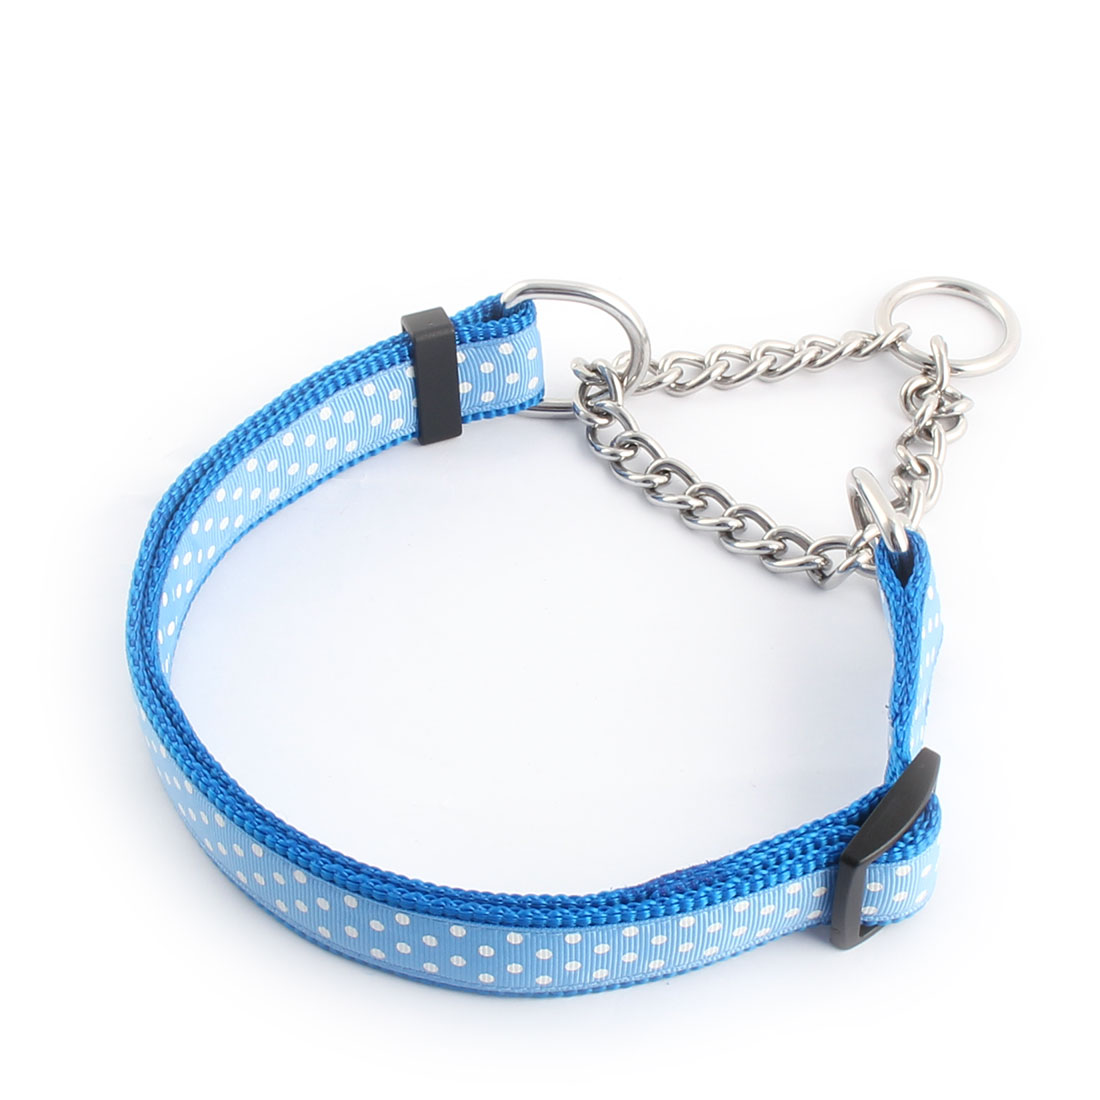 Pet Outdoor Polka Dot Print Adjustable Traction Rope Dog Neck Chain Leash Blue